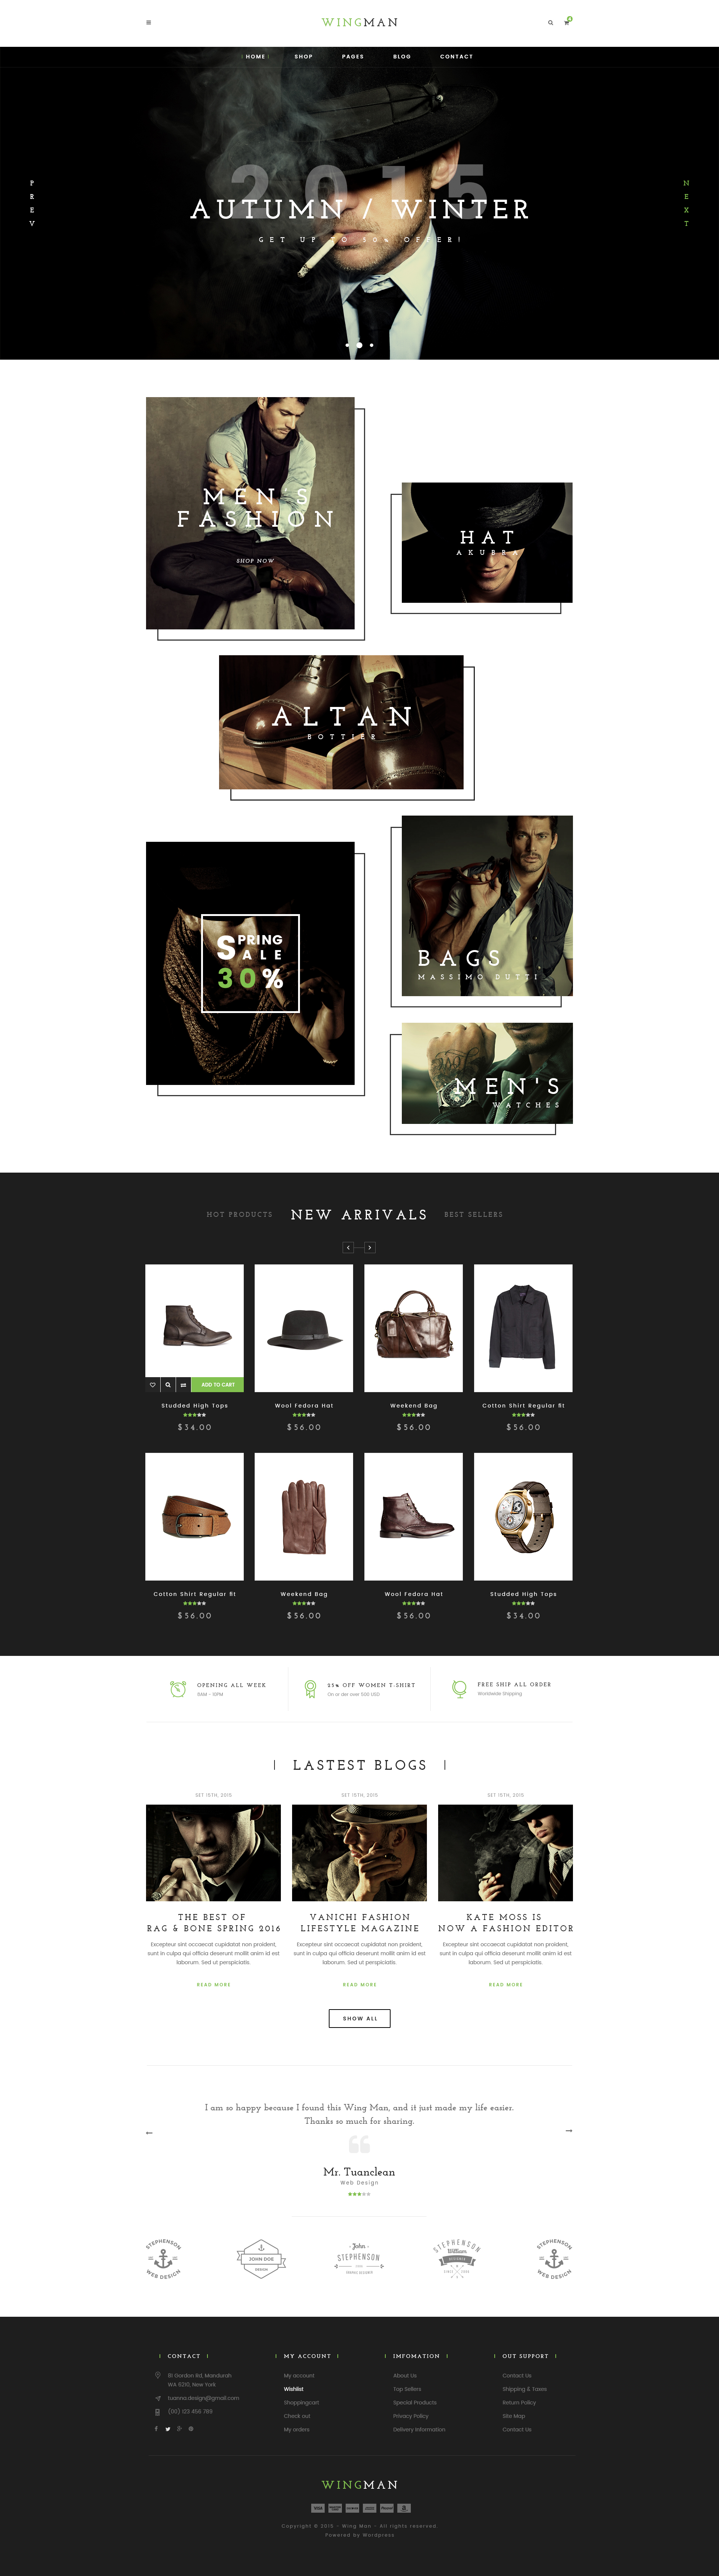 WINGMAN - eCommerce and Blog HTML Template (Retail) Nulled - http ...